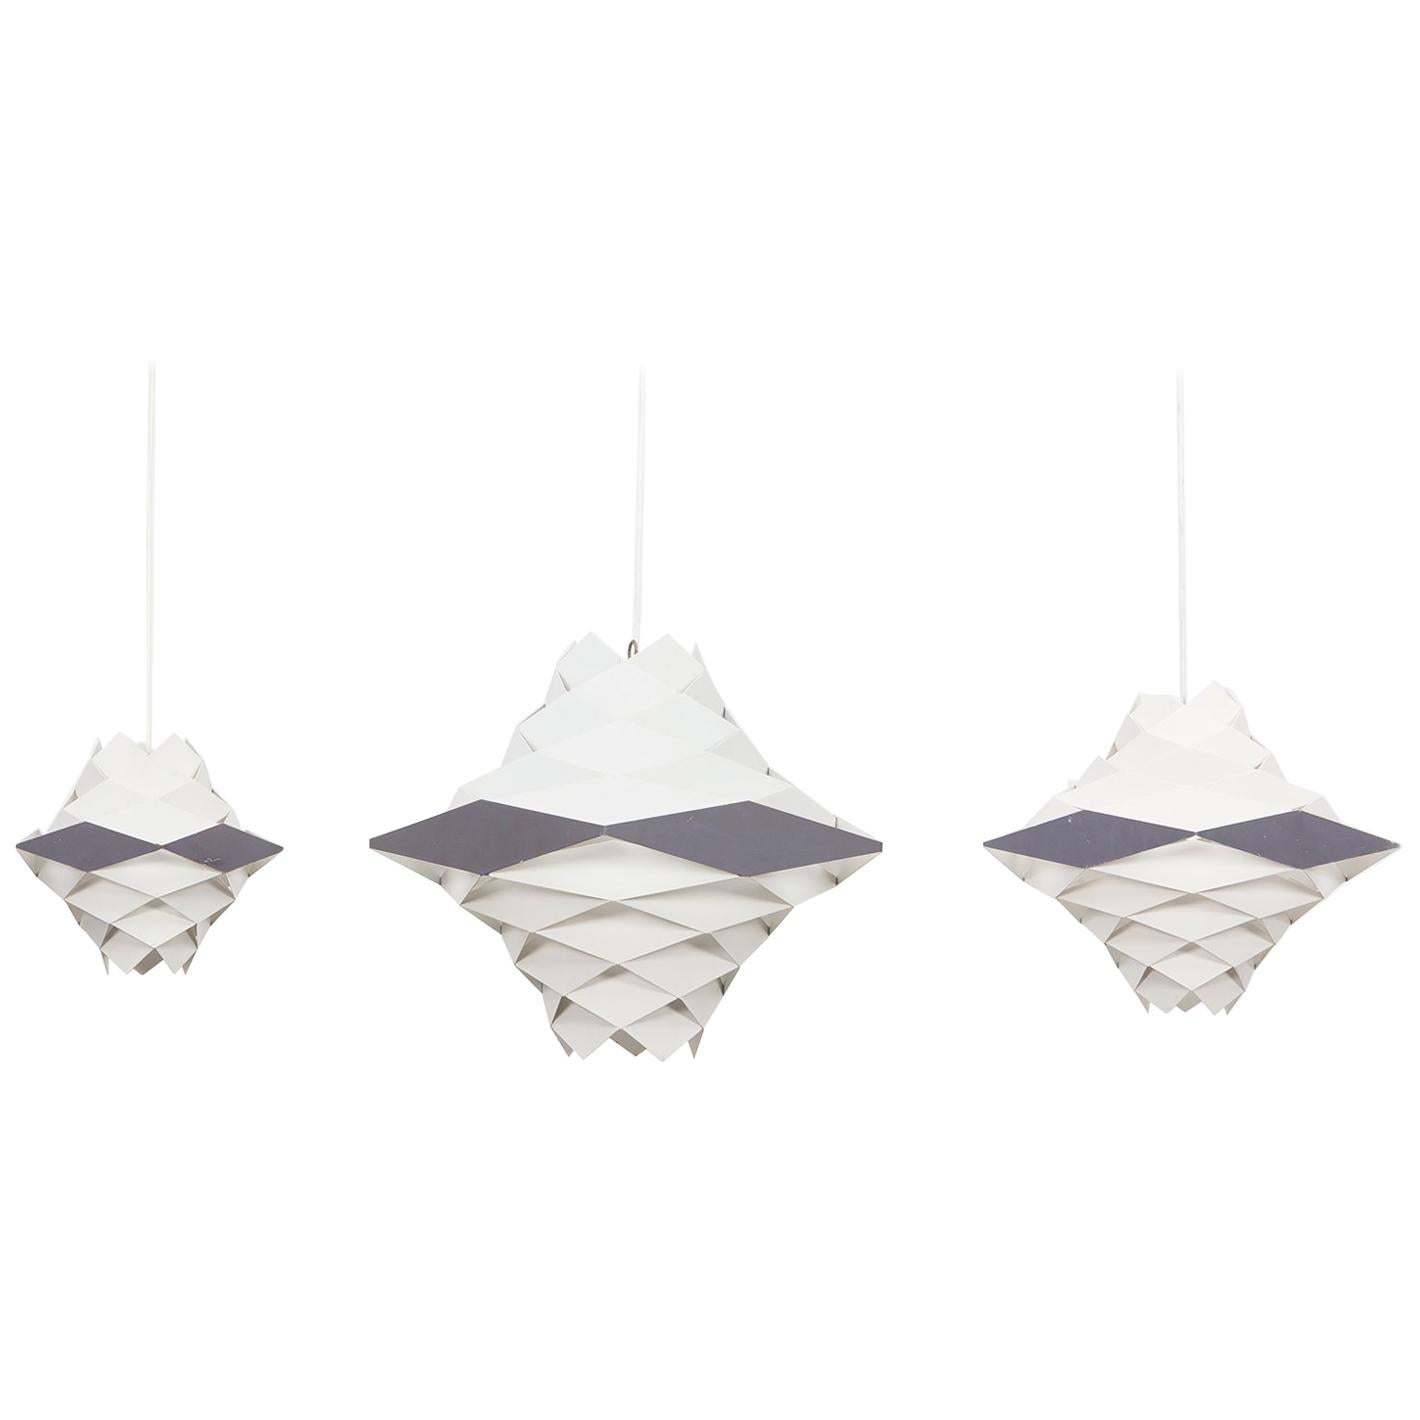 1950s White, Grey Metal Set of Three Ceiling Lamps by Preben Dahl